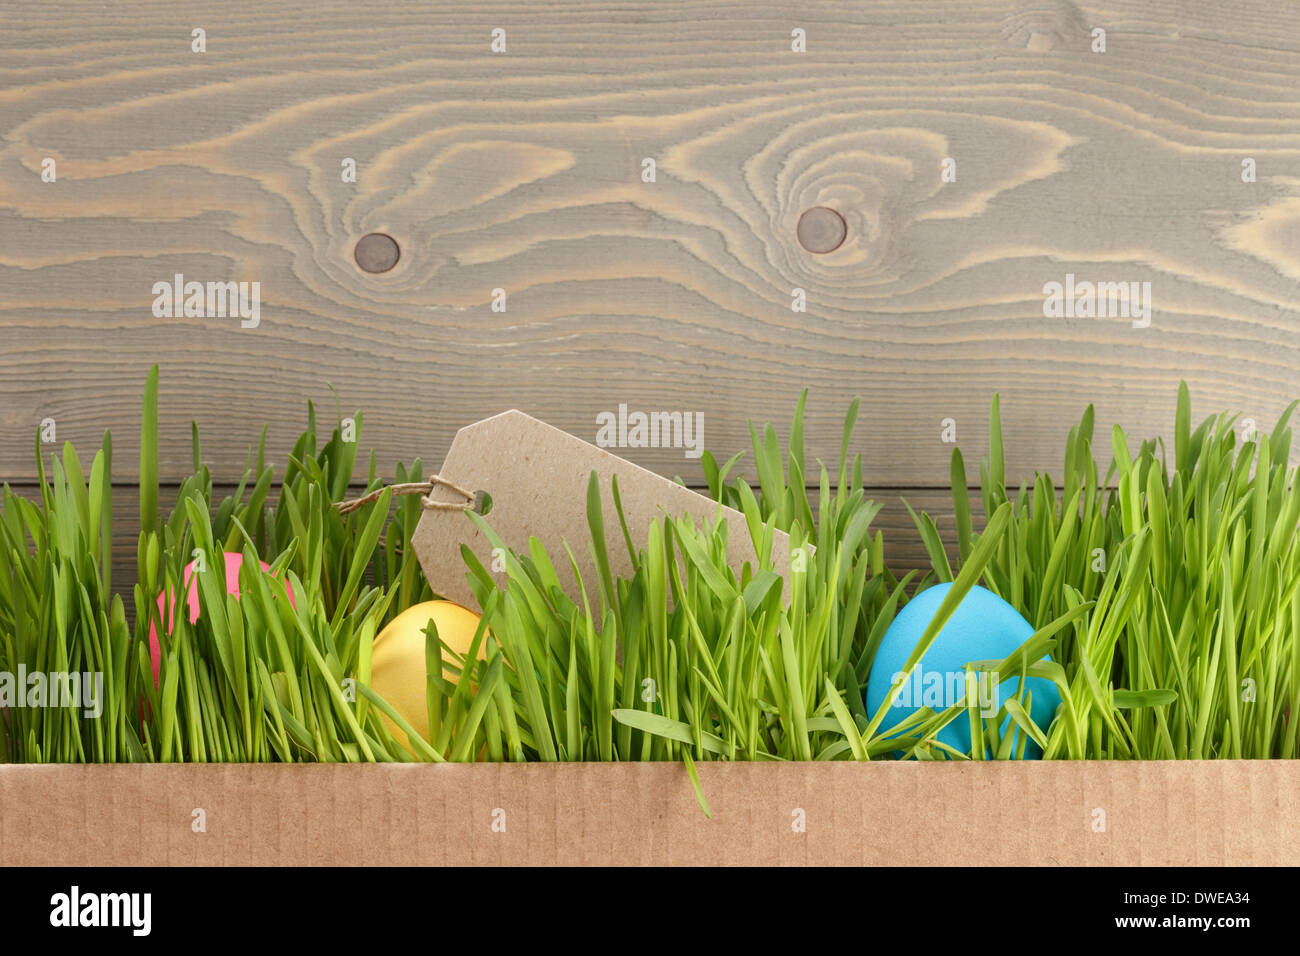 Easter Eggs Hidden In Grass Border Composition Wood Background